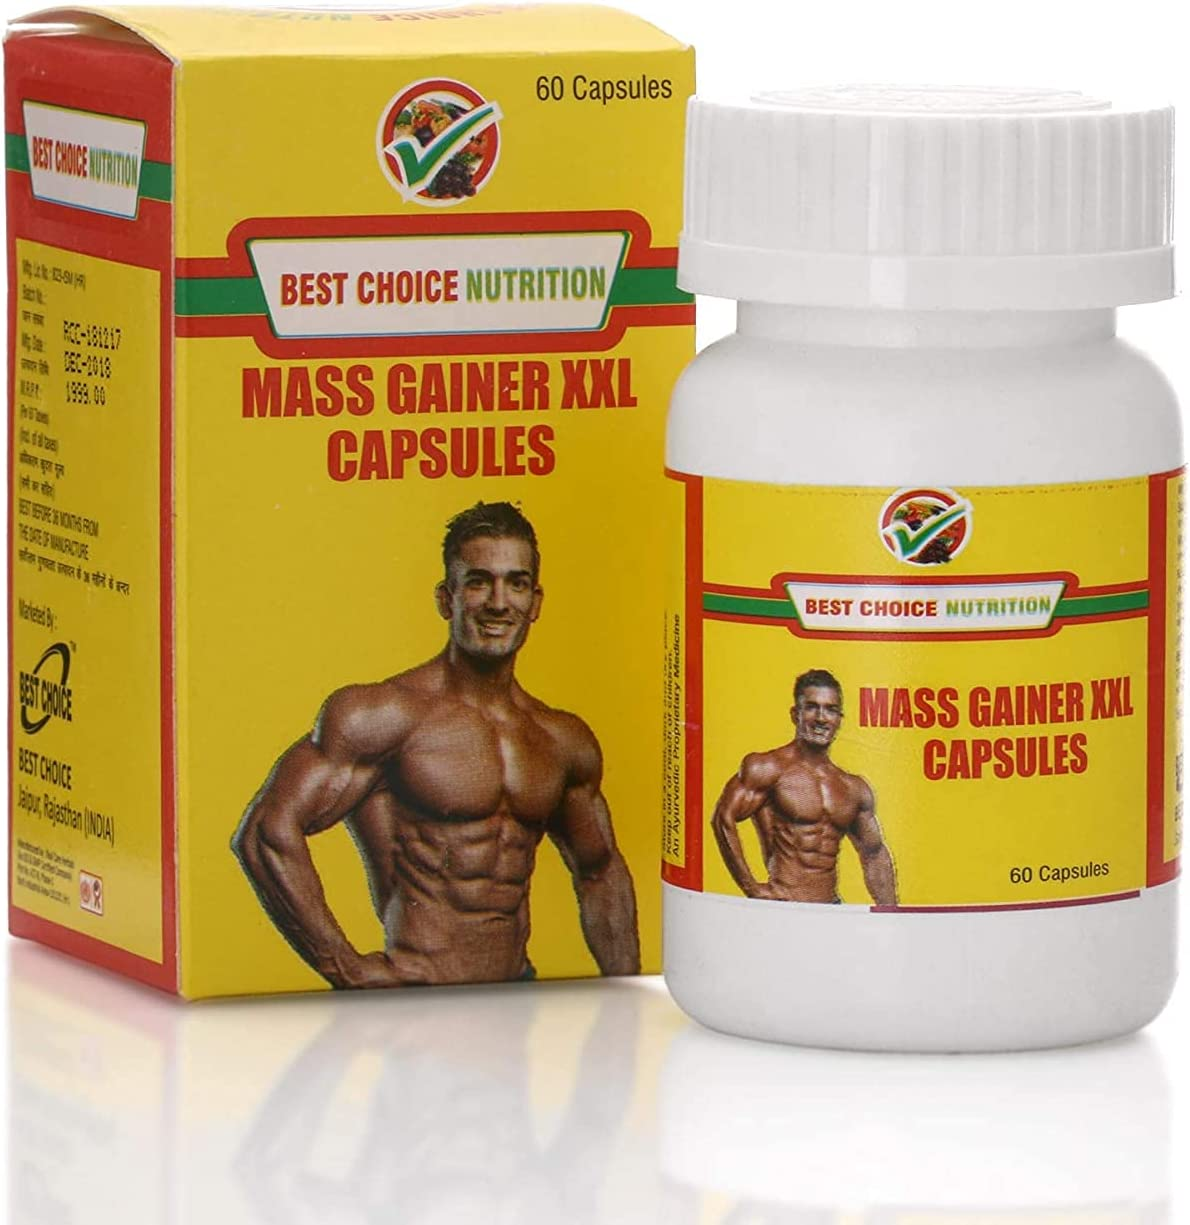 Valocity Best Choice Nutririon Mass Gainer XXL OFFicial store for Fa Capsule Max 86% OFF 60